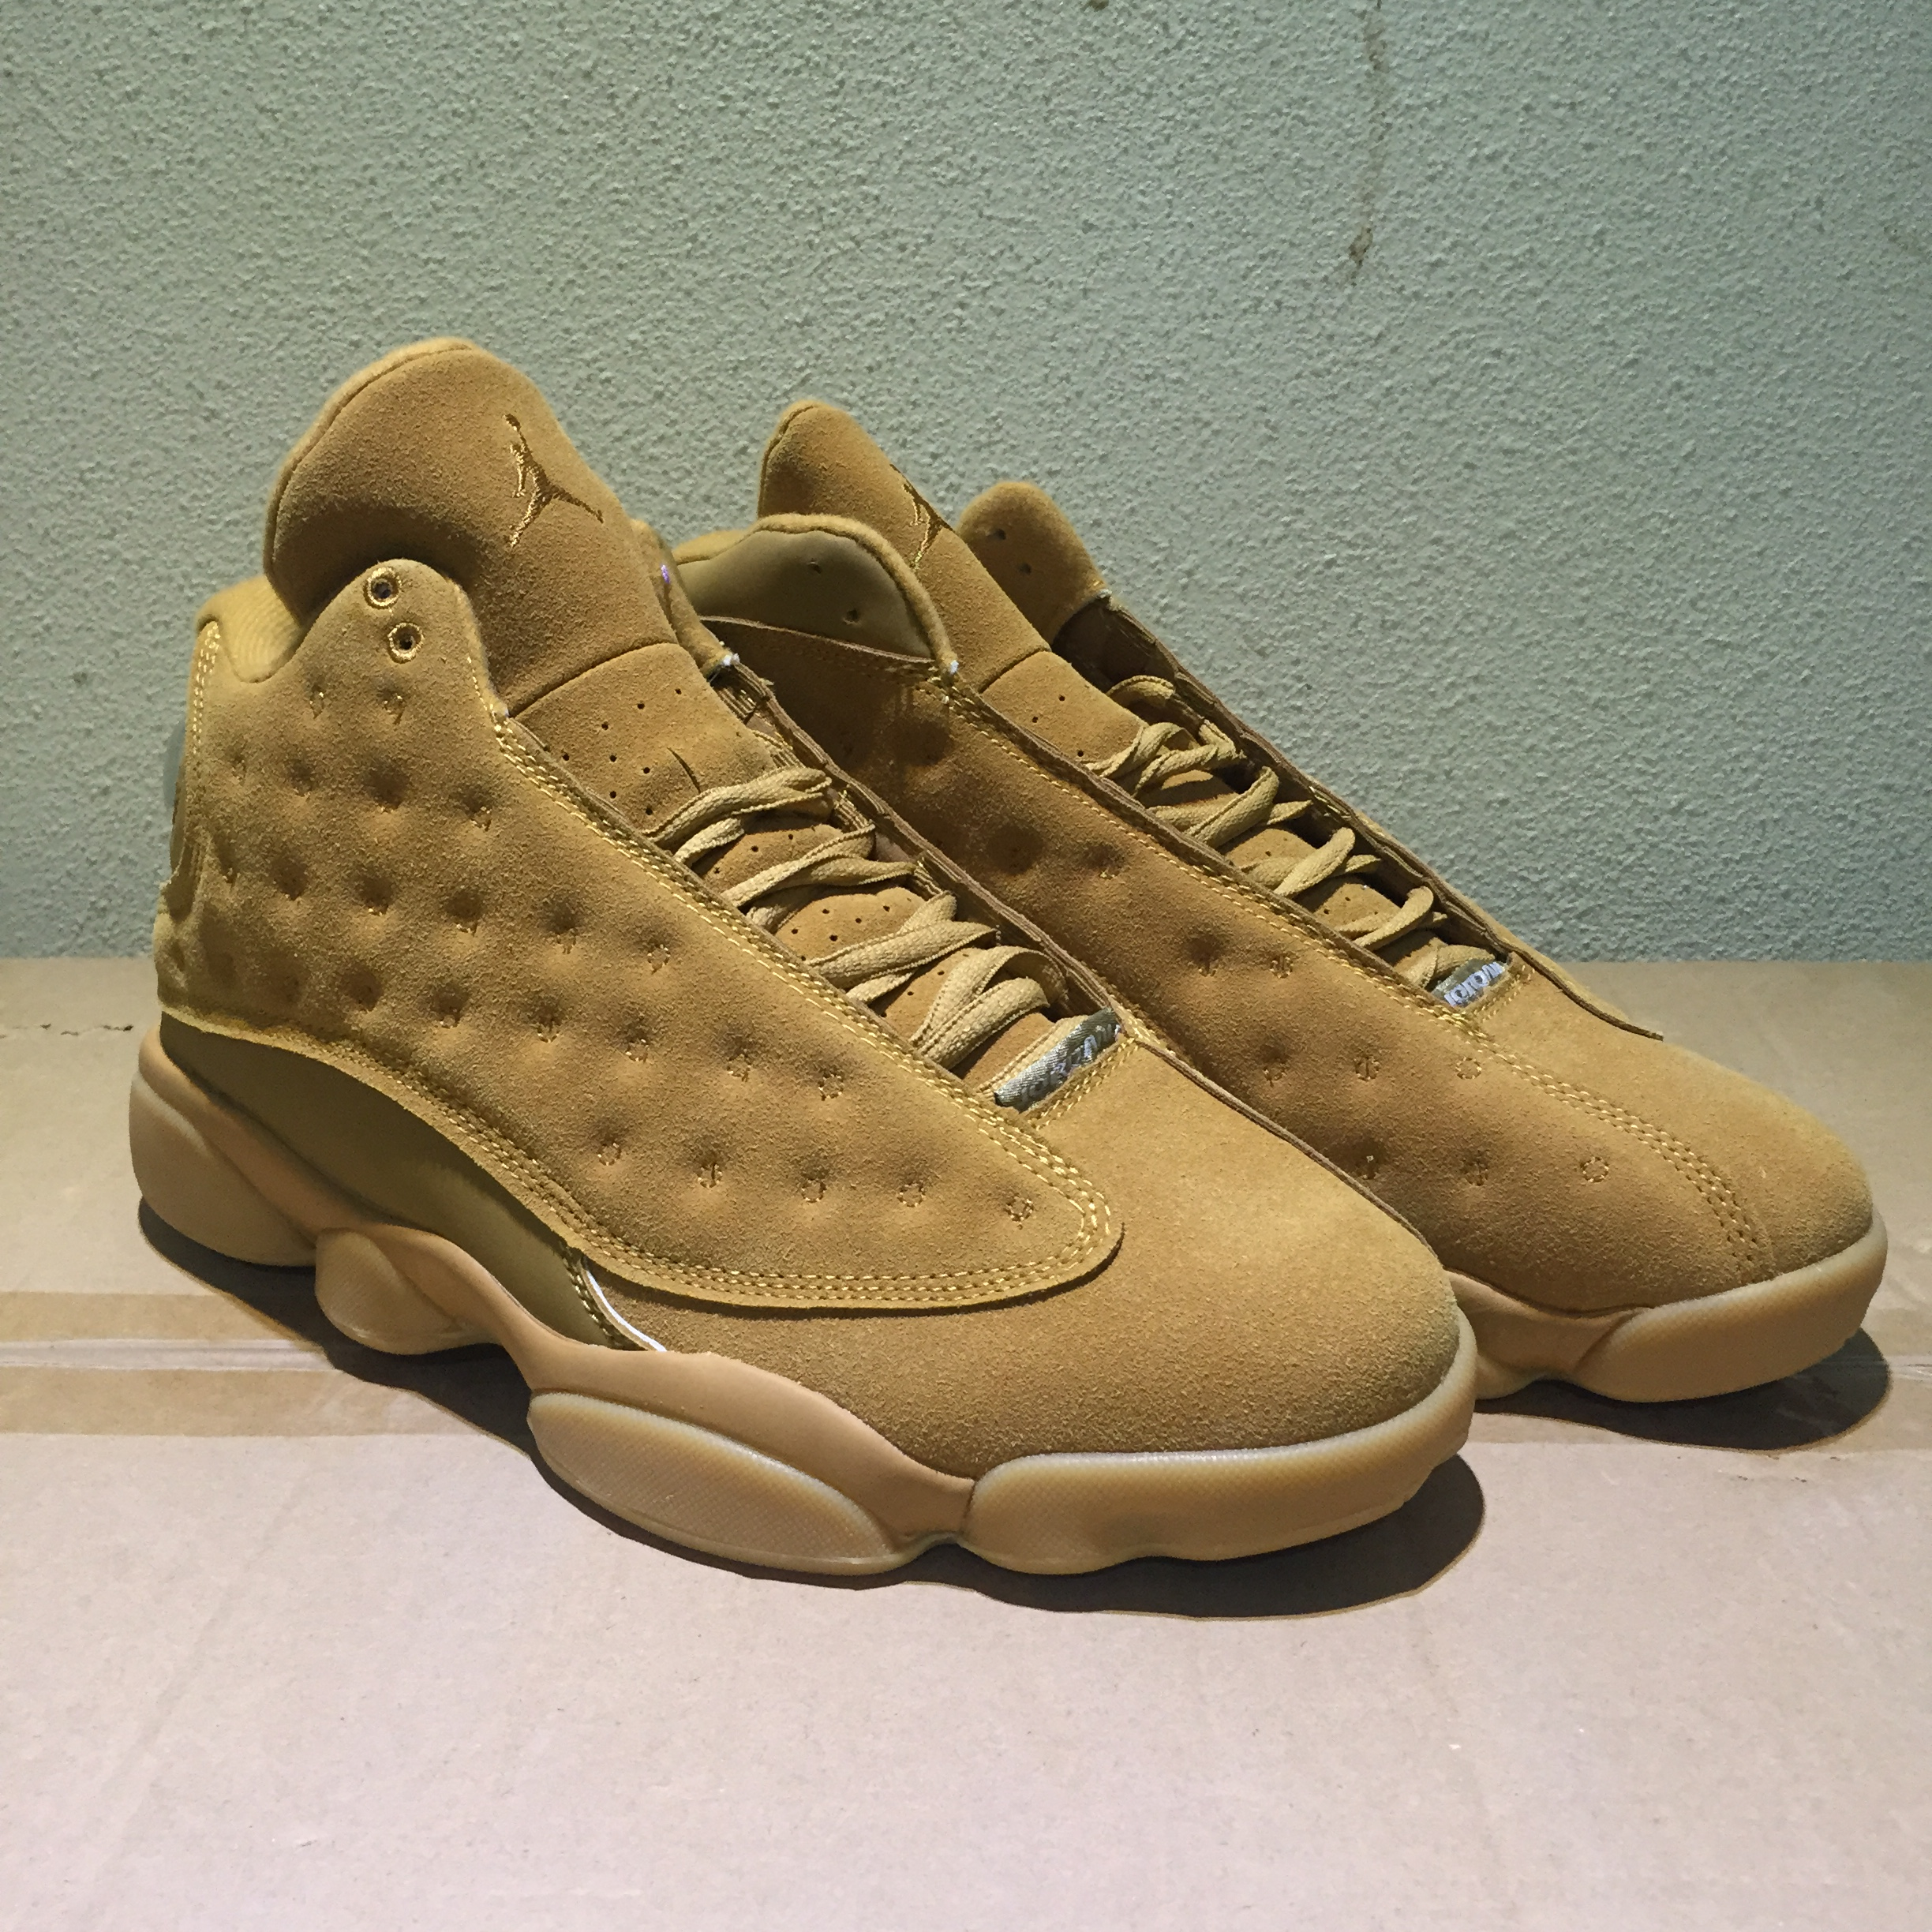 2017 Men Air Jordan 13 Wheat Yellow Shoes